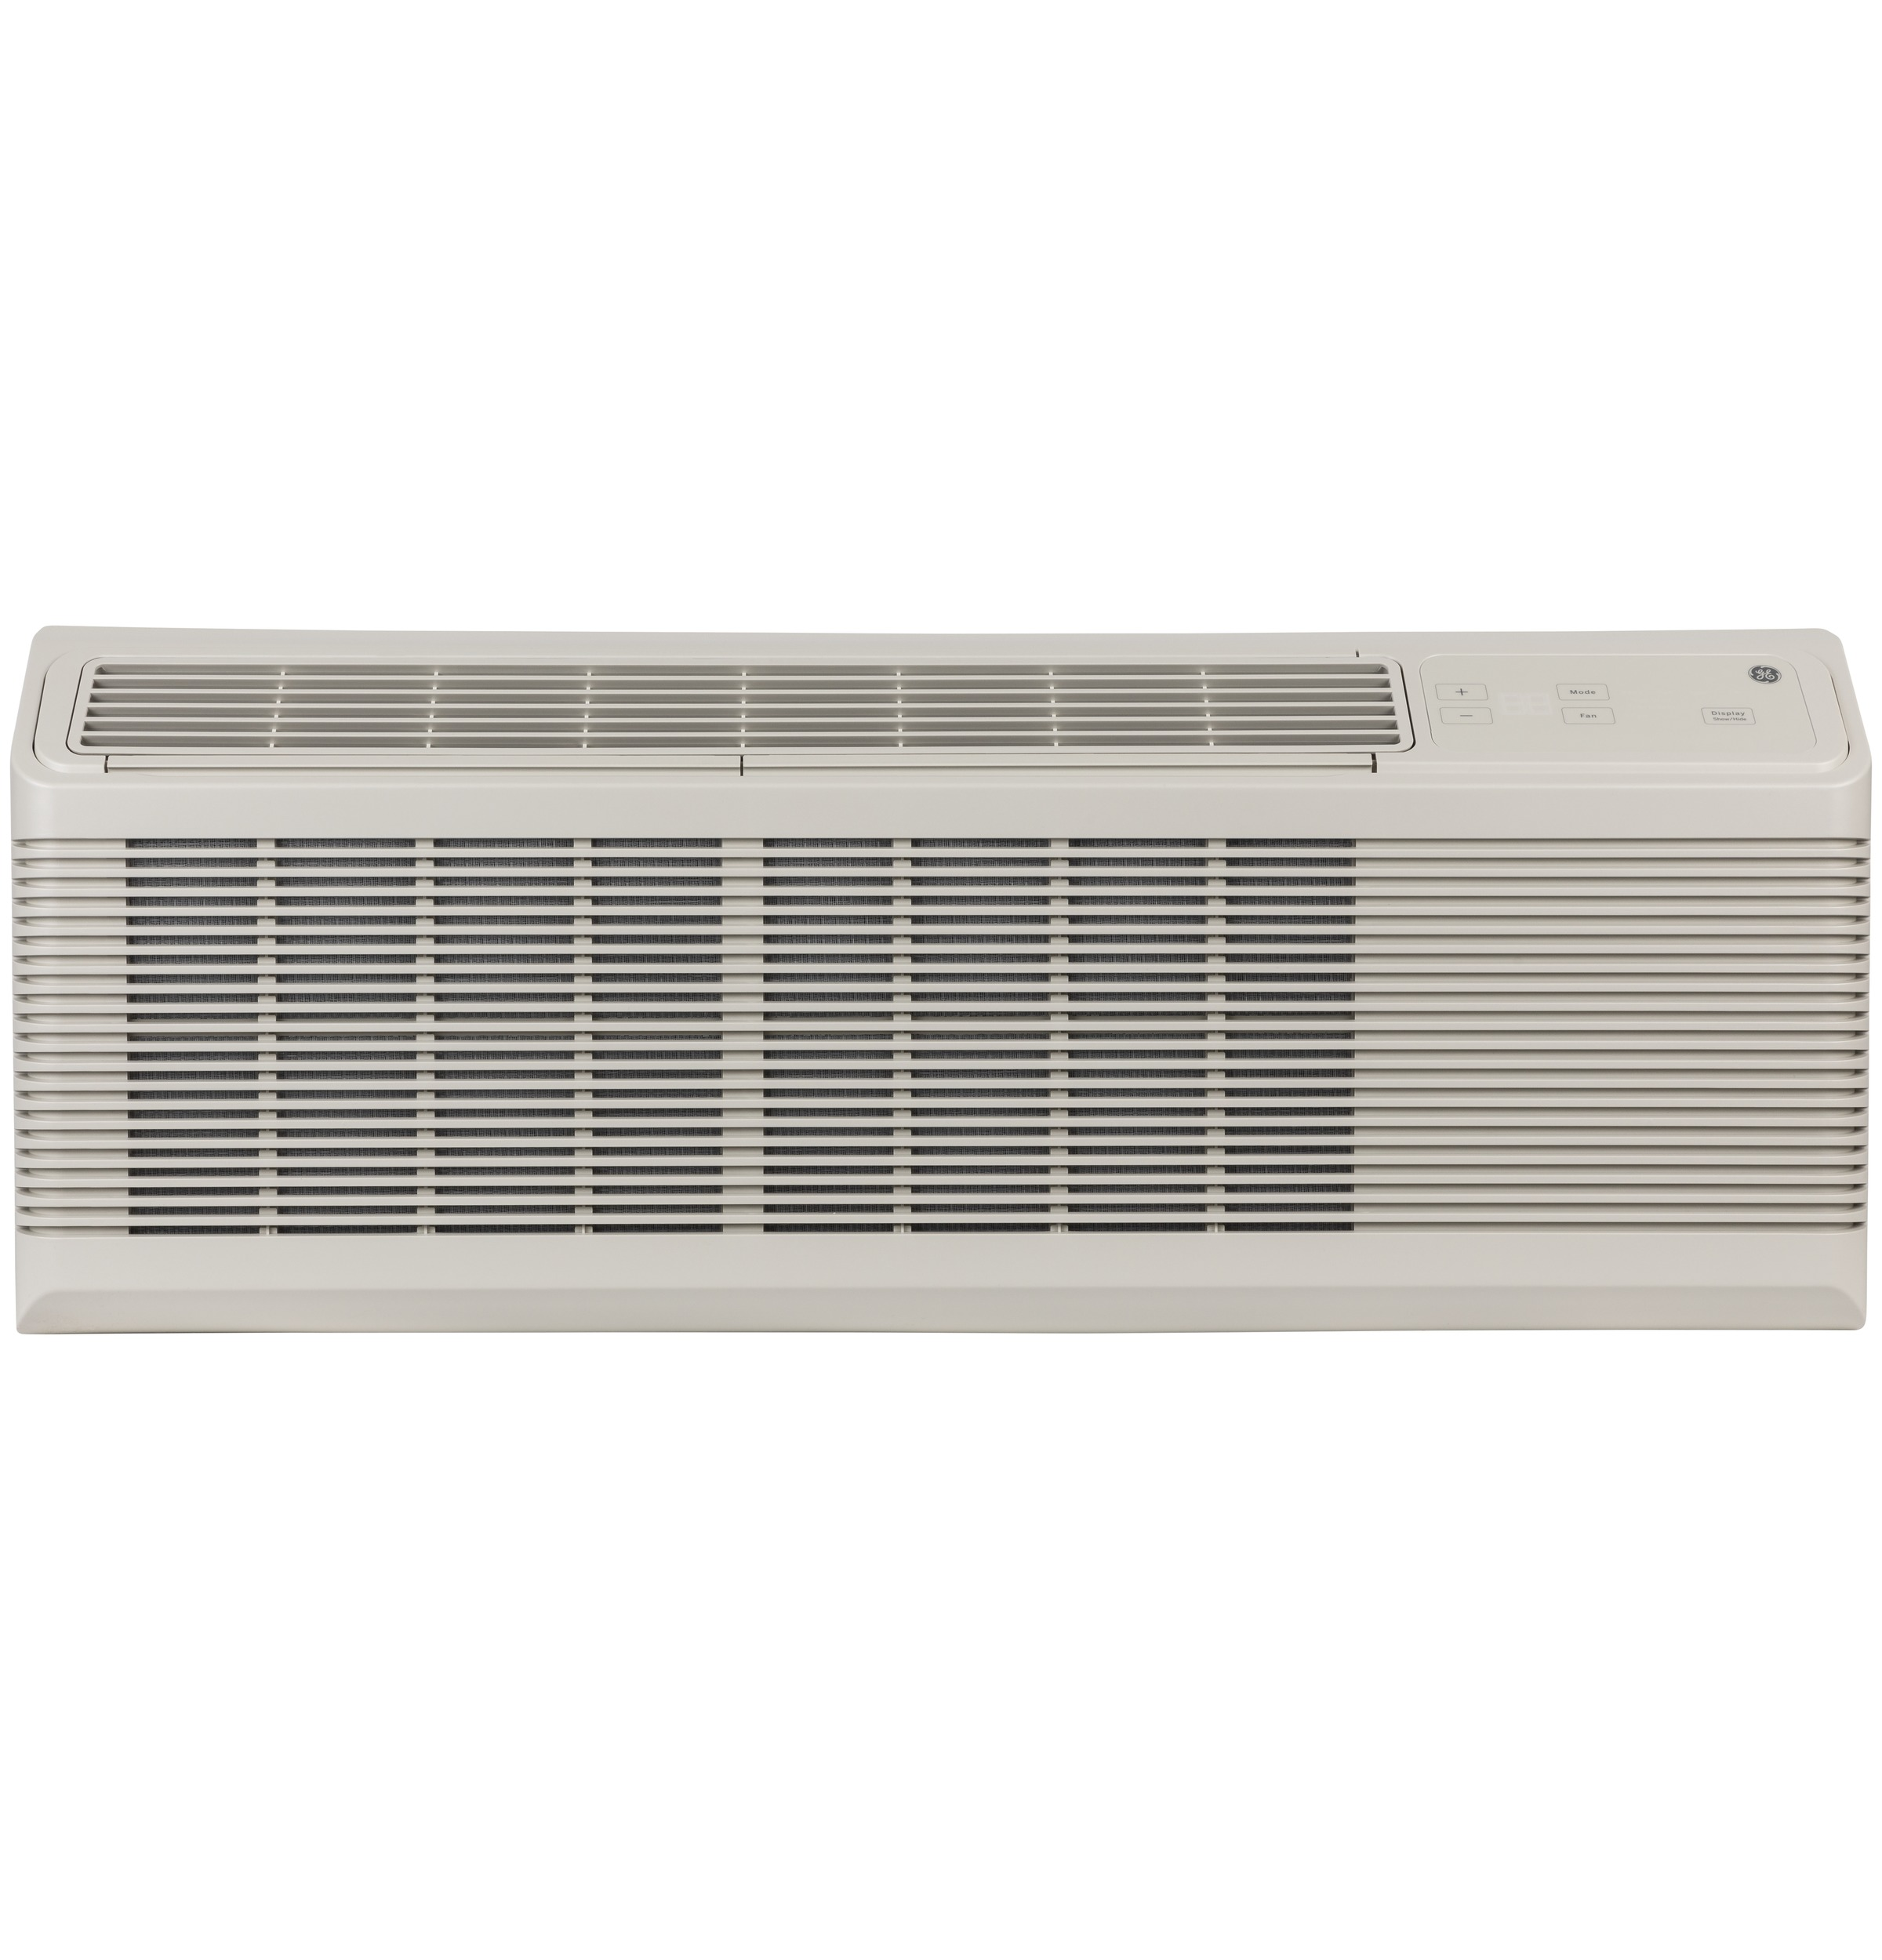 GE Zoneline® Heat Pump Unit, 230/208 Volt | AZ65H07DAB | GE ... on